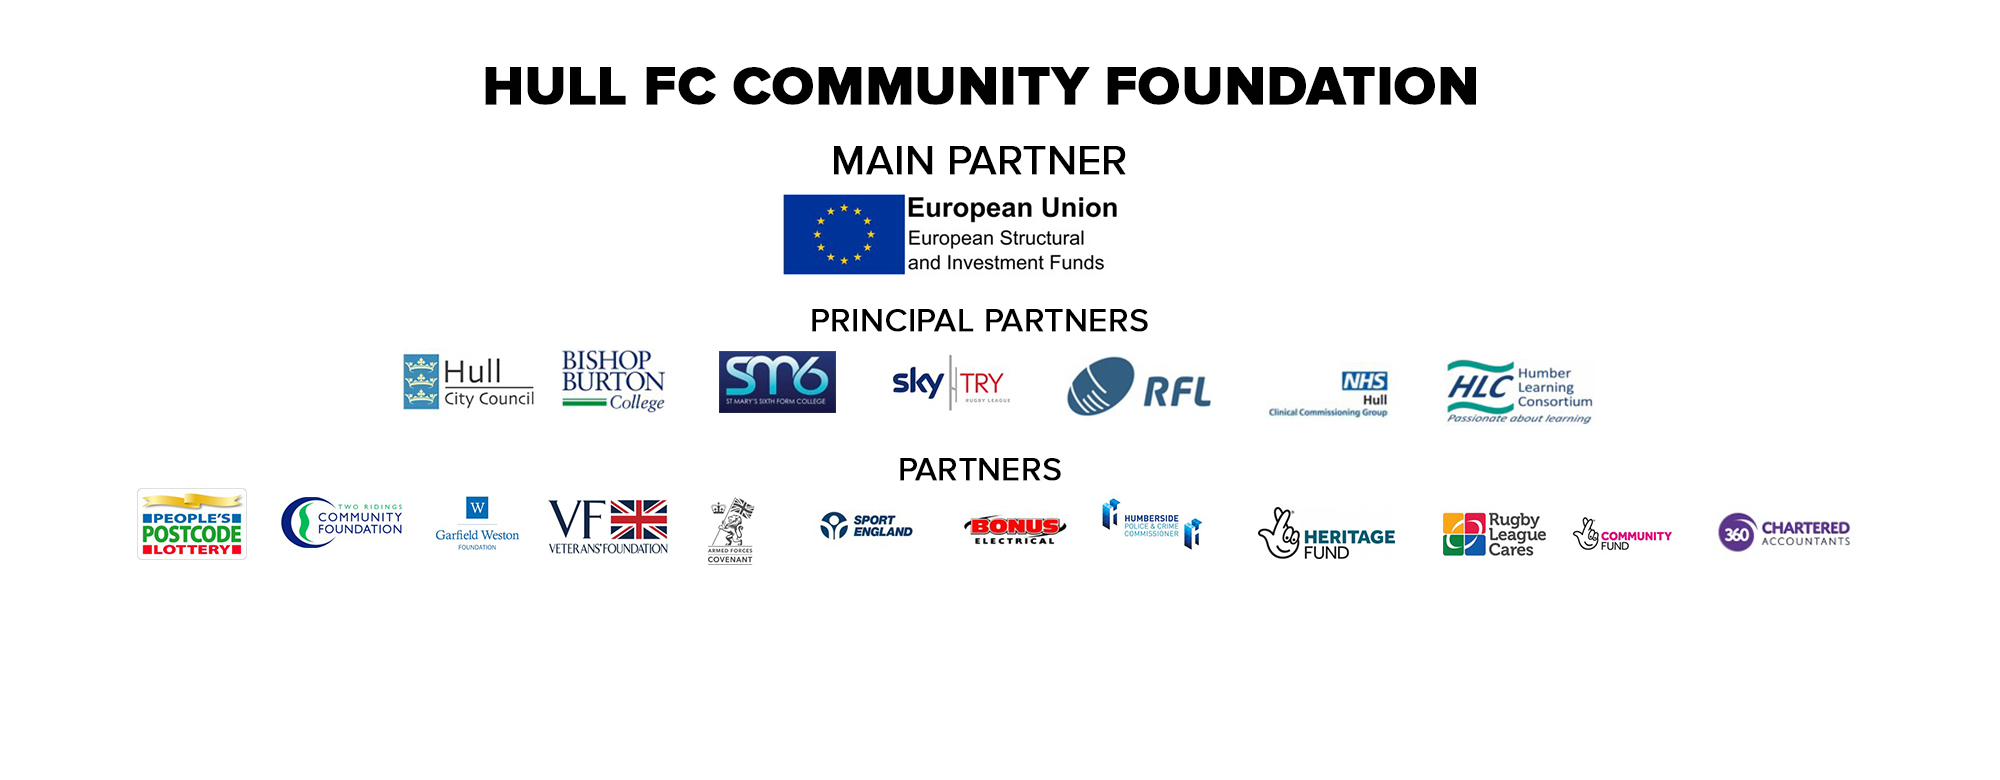 Hull FC Community Foundation - About Us